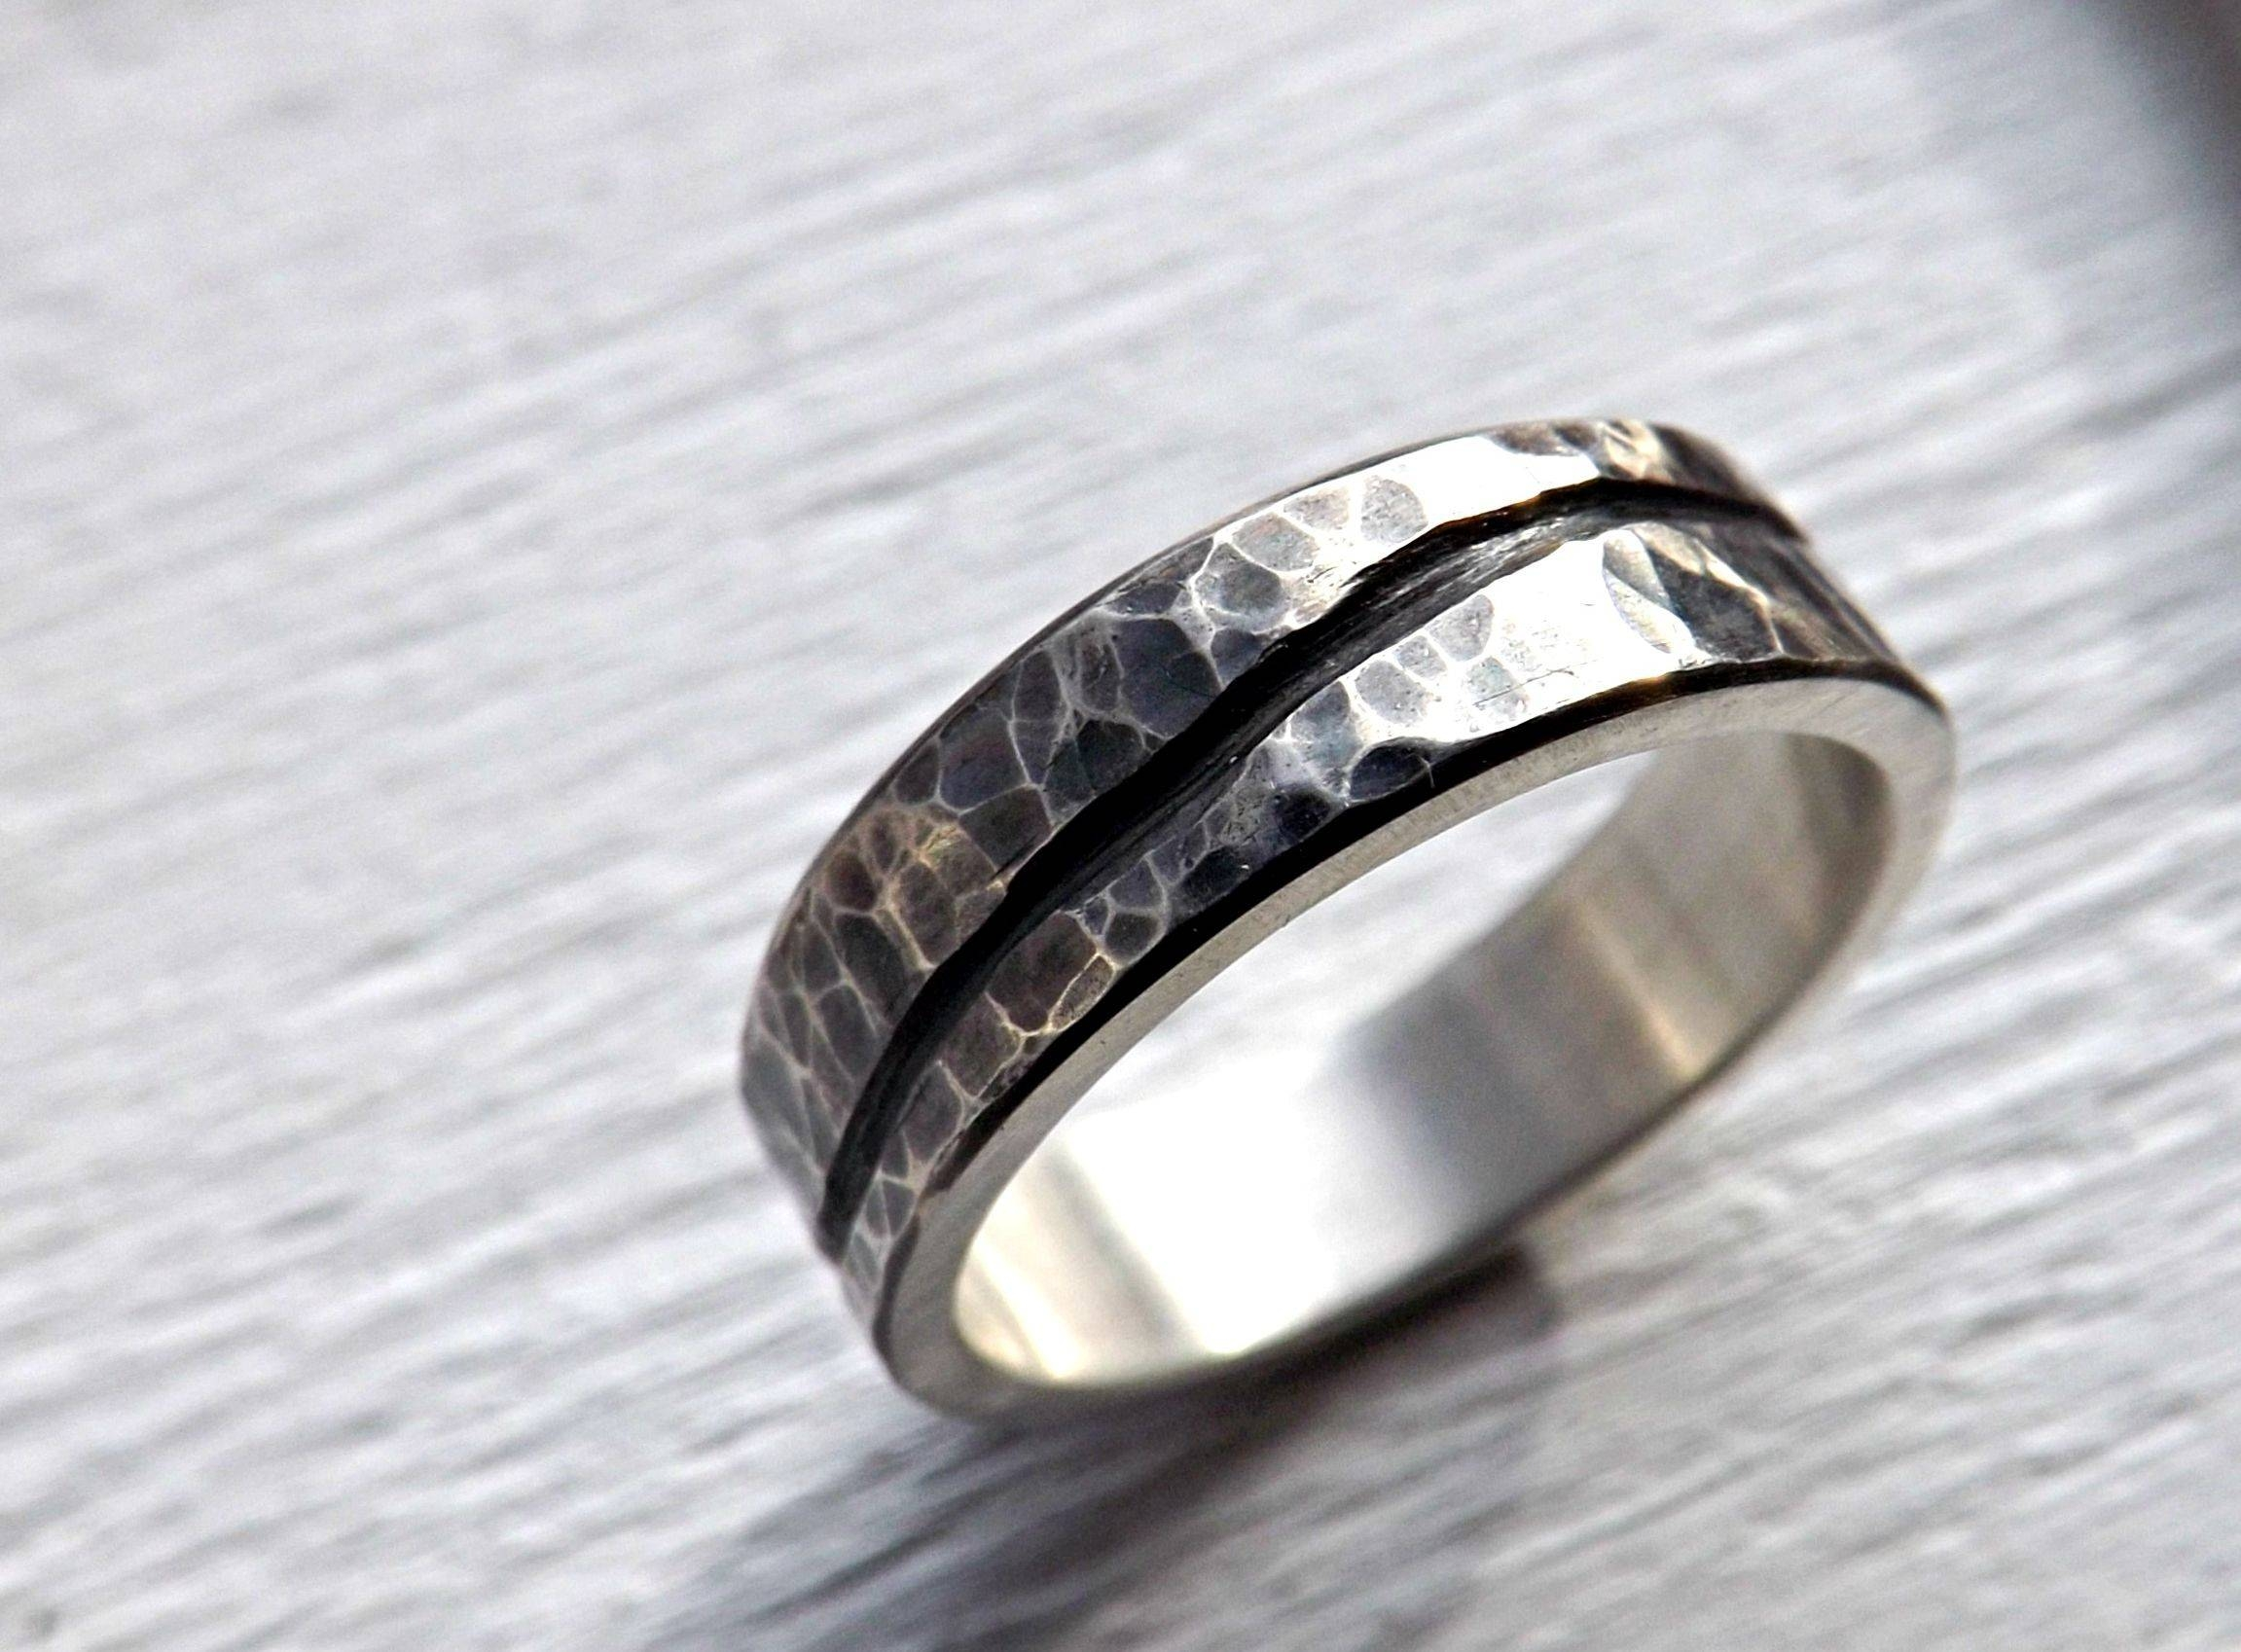 Buy A Custom Rustic Wave Ring Silver, Mens Wedding Band Ocean Intended For Silver Mens Engagement Rings (View 4 of 15)